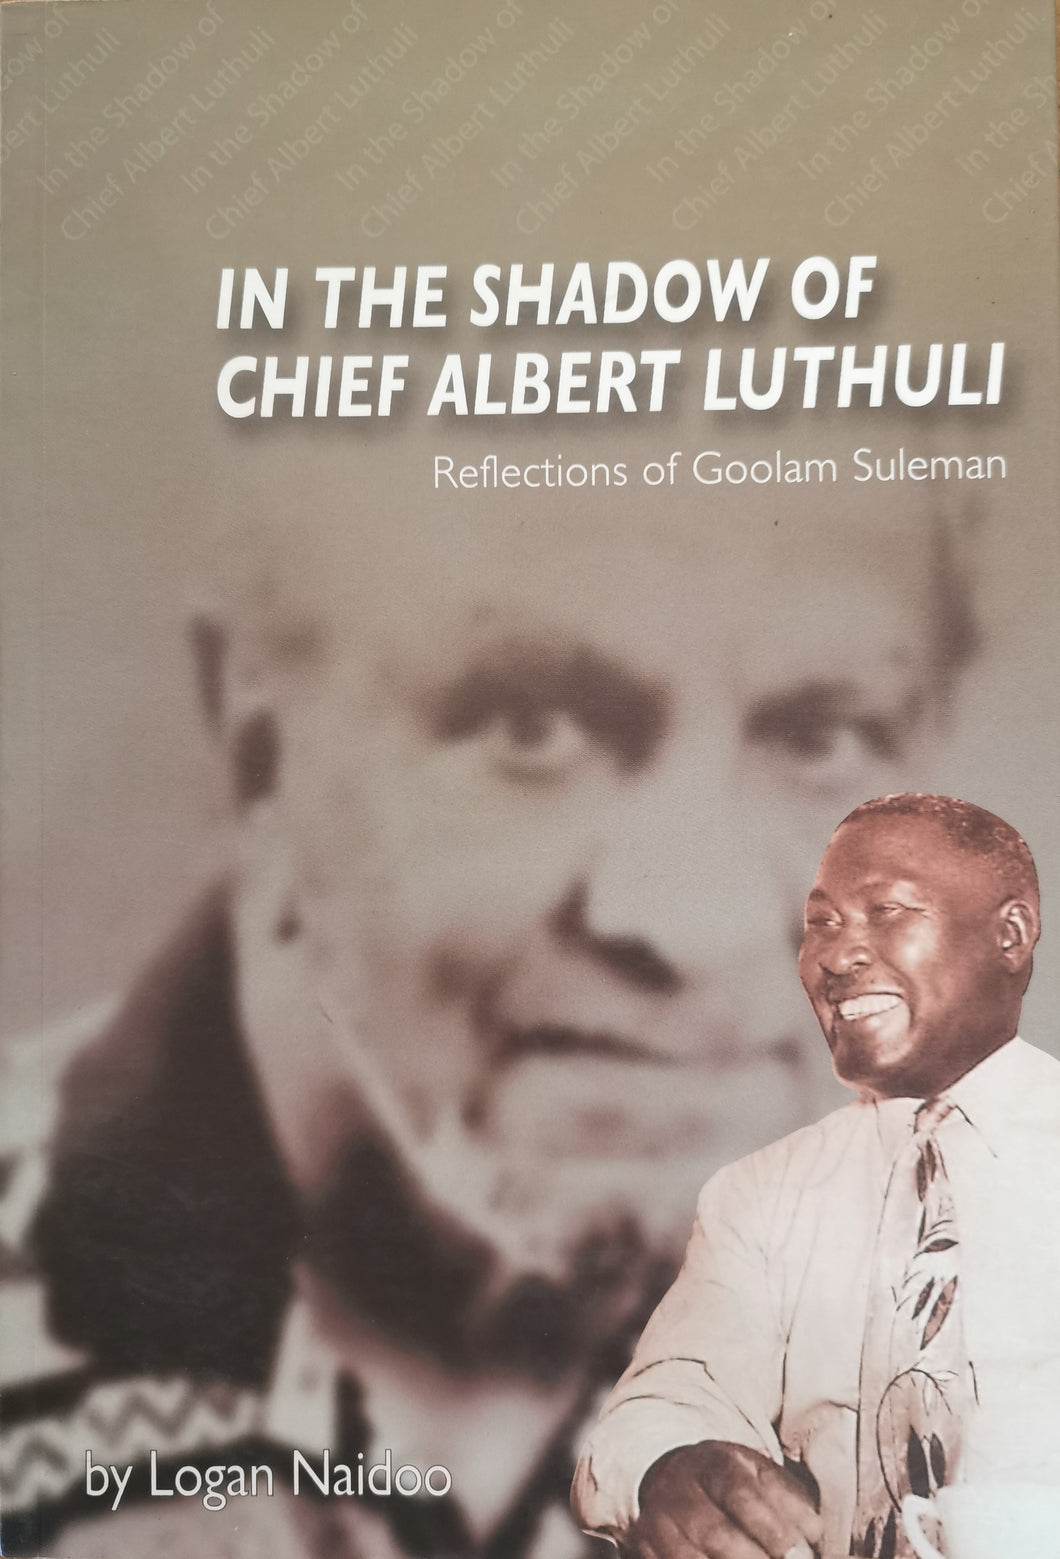 In the Shadow of Chief Albert Luthuli: Reflections of Goolam Suleman by Logan Naidoo